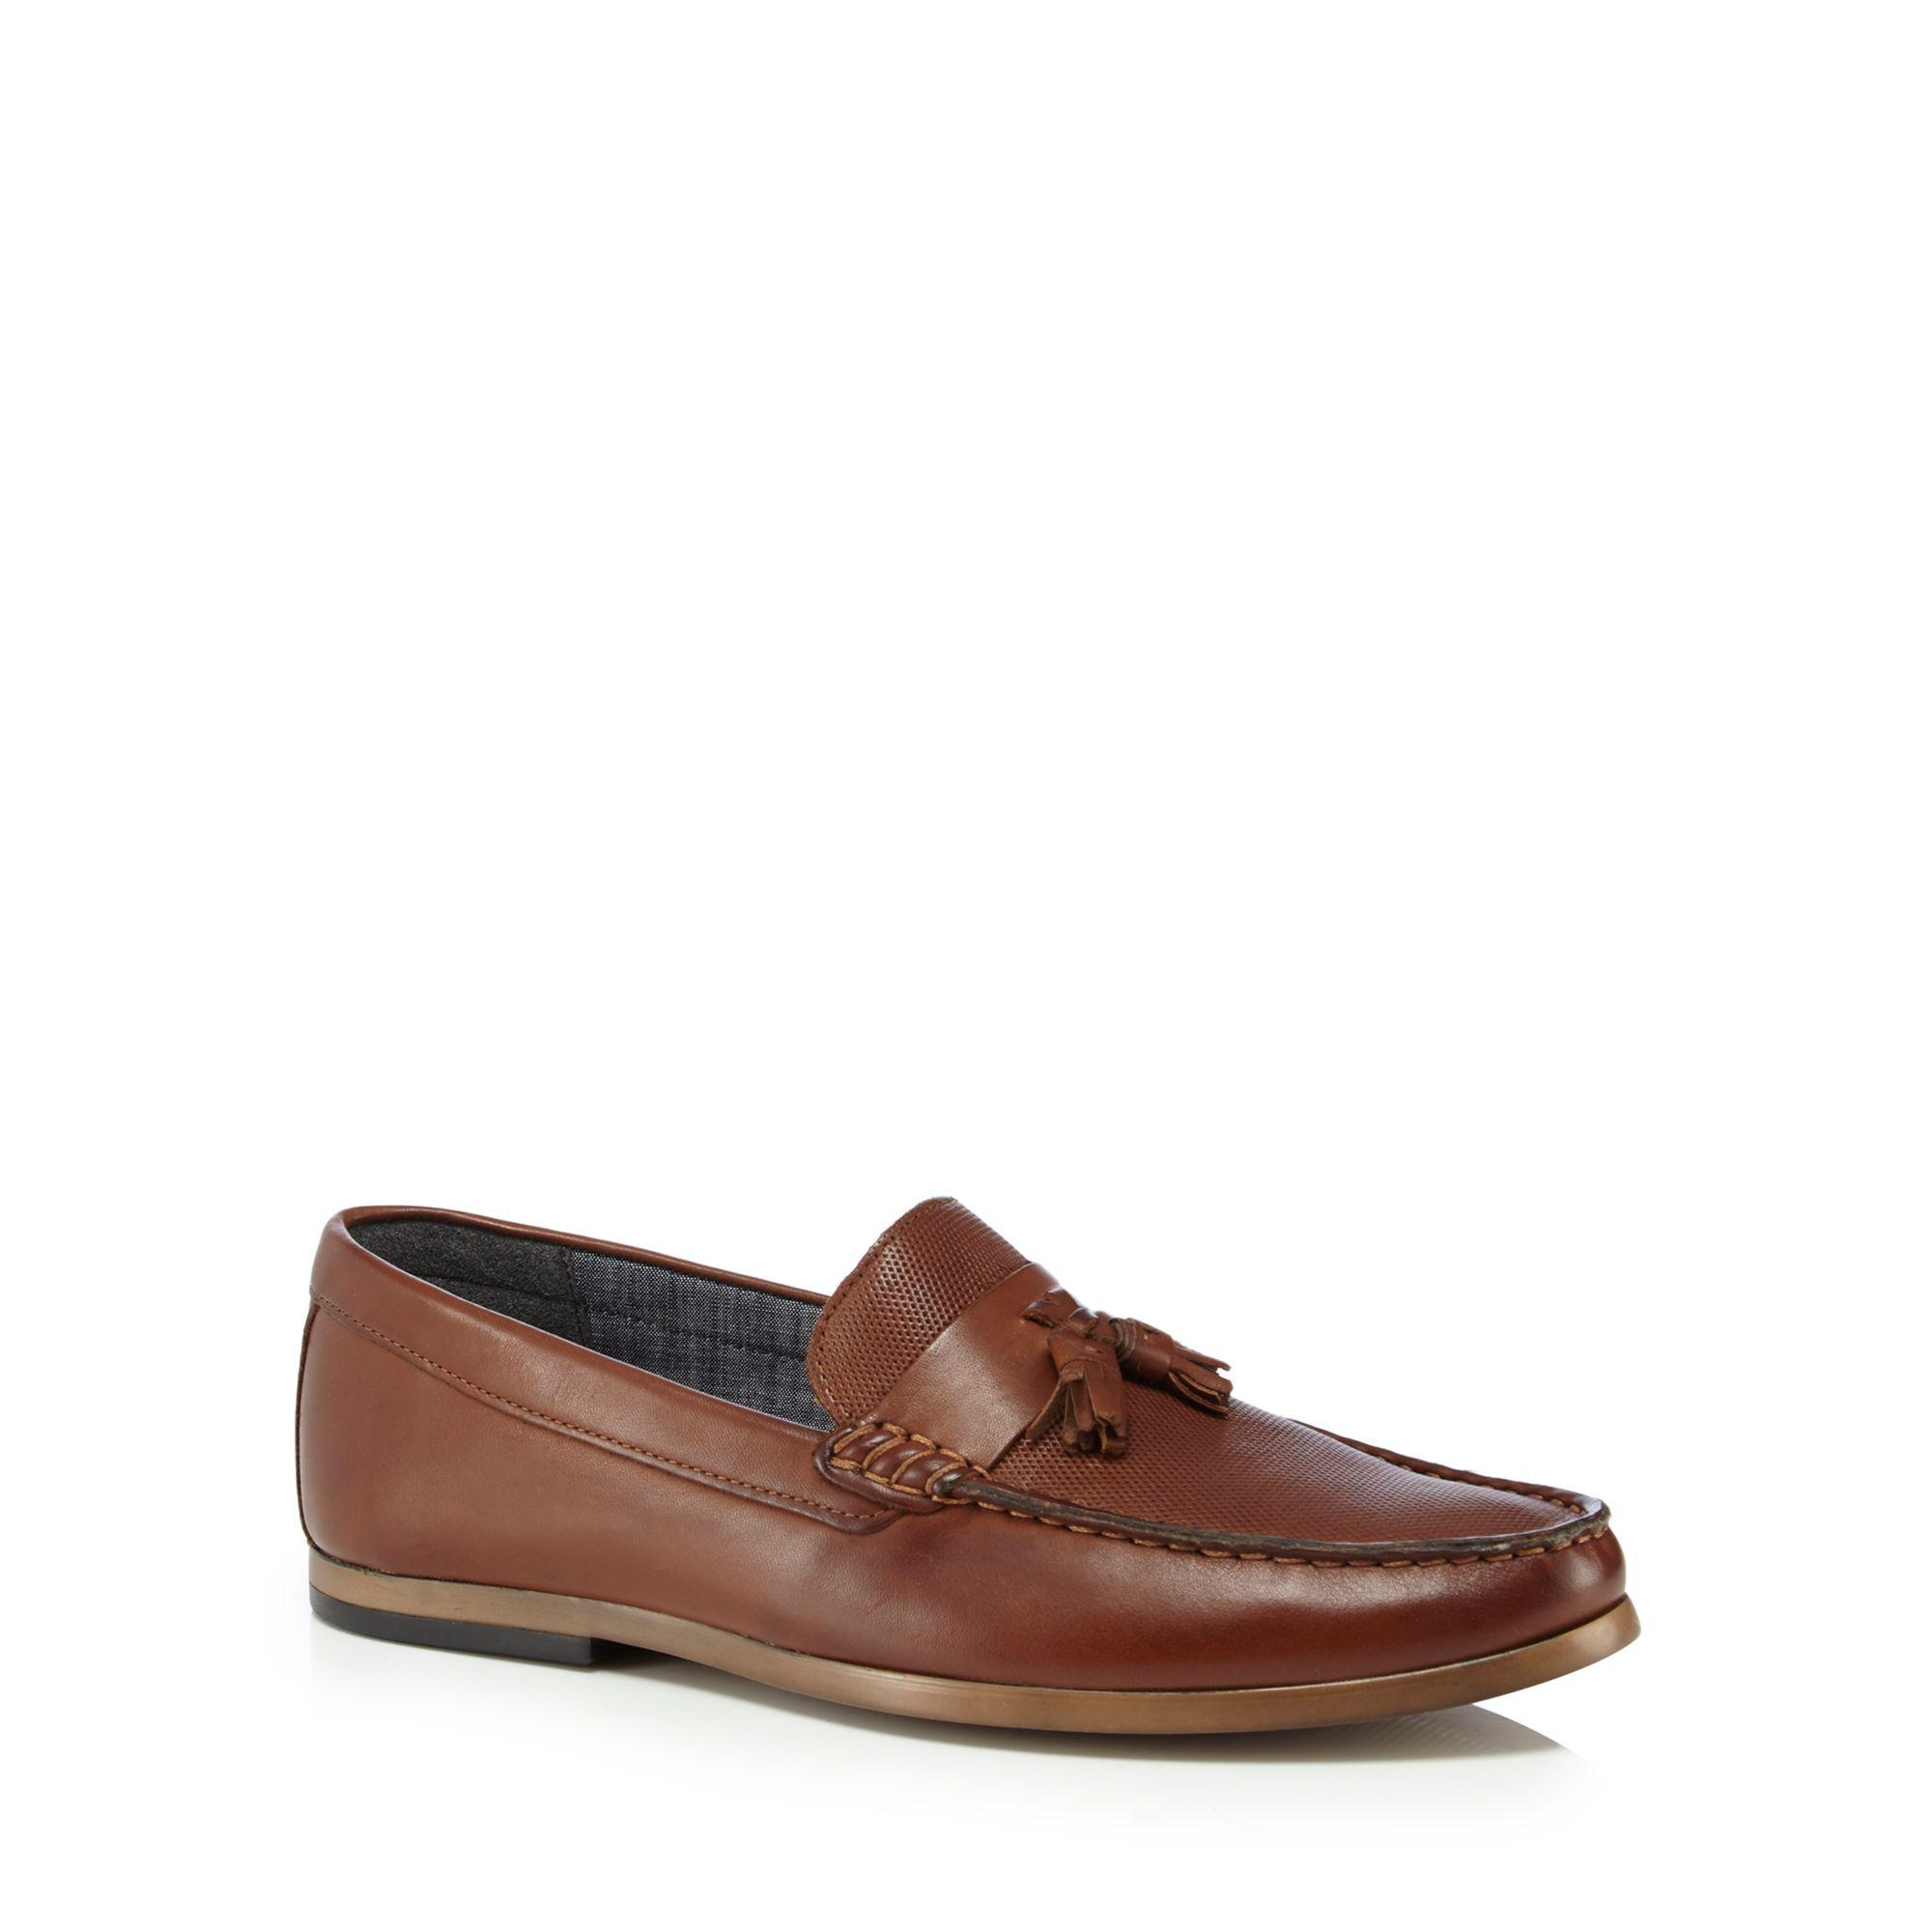 Brown leather 'Gravity' loafers for sale finishline outlet where to buy clearance store cheap price cheap visa payment collections for sale bGAy3wlC